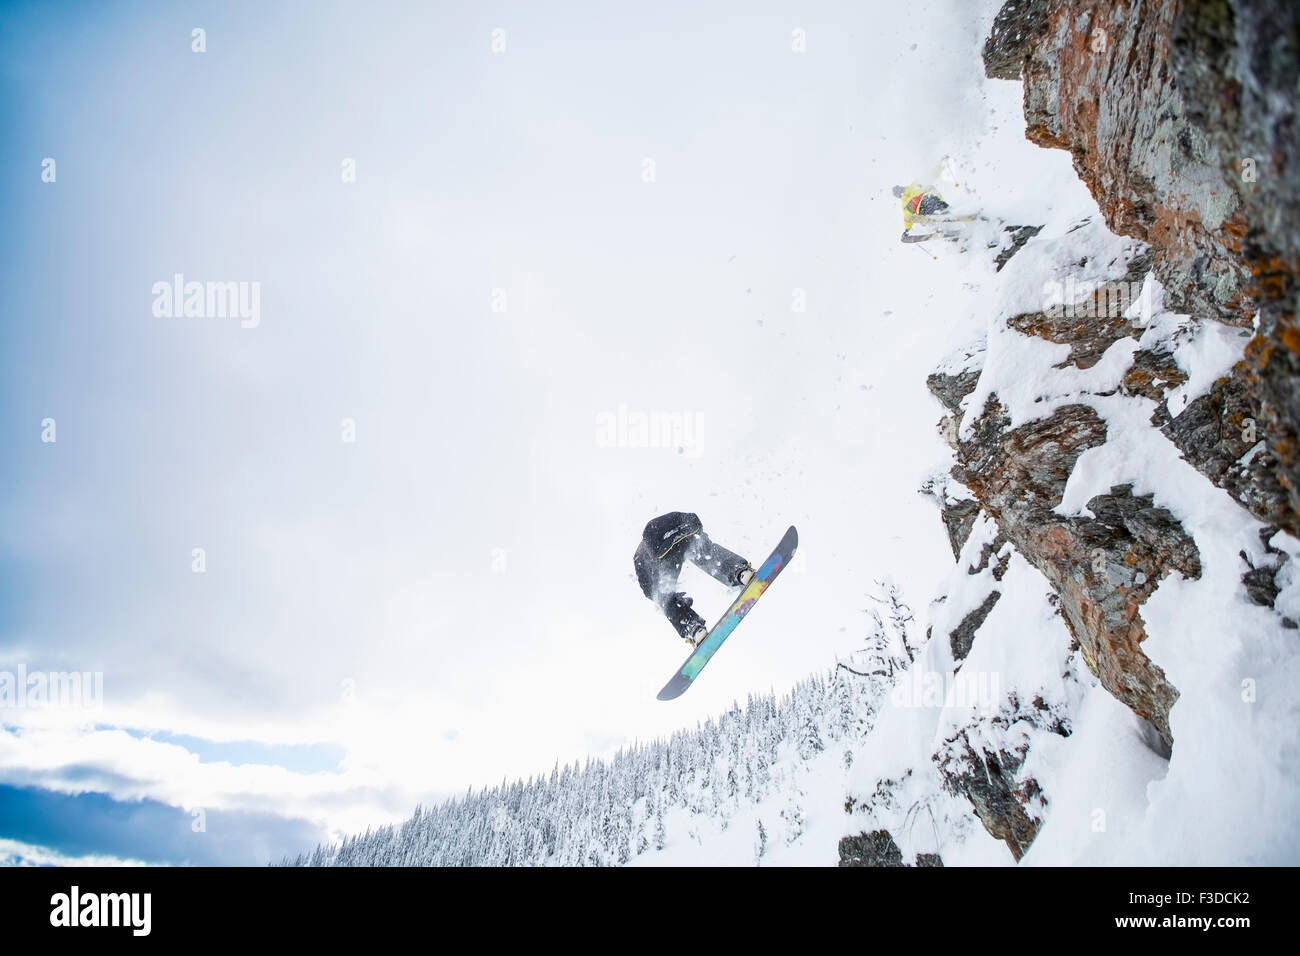 Low angle view of two men jumping from ski slope - Stock Image